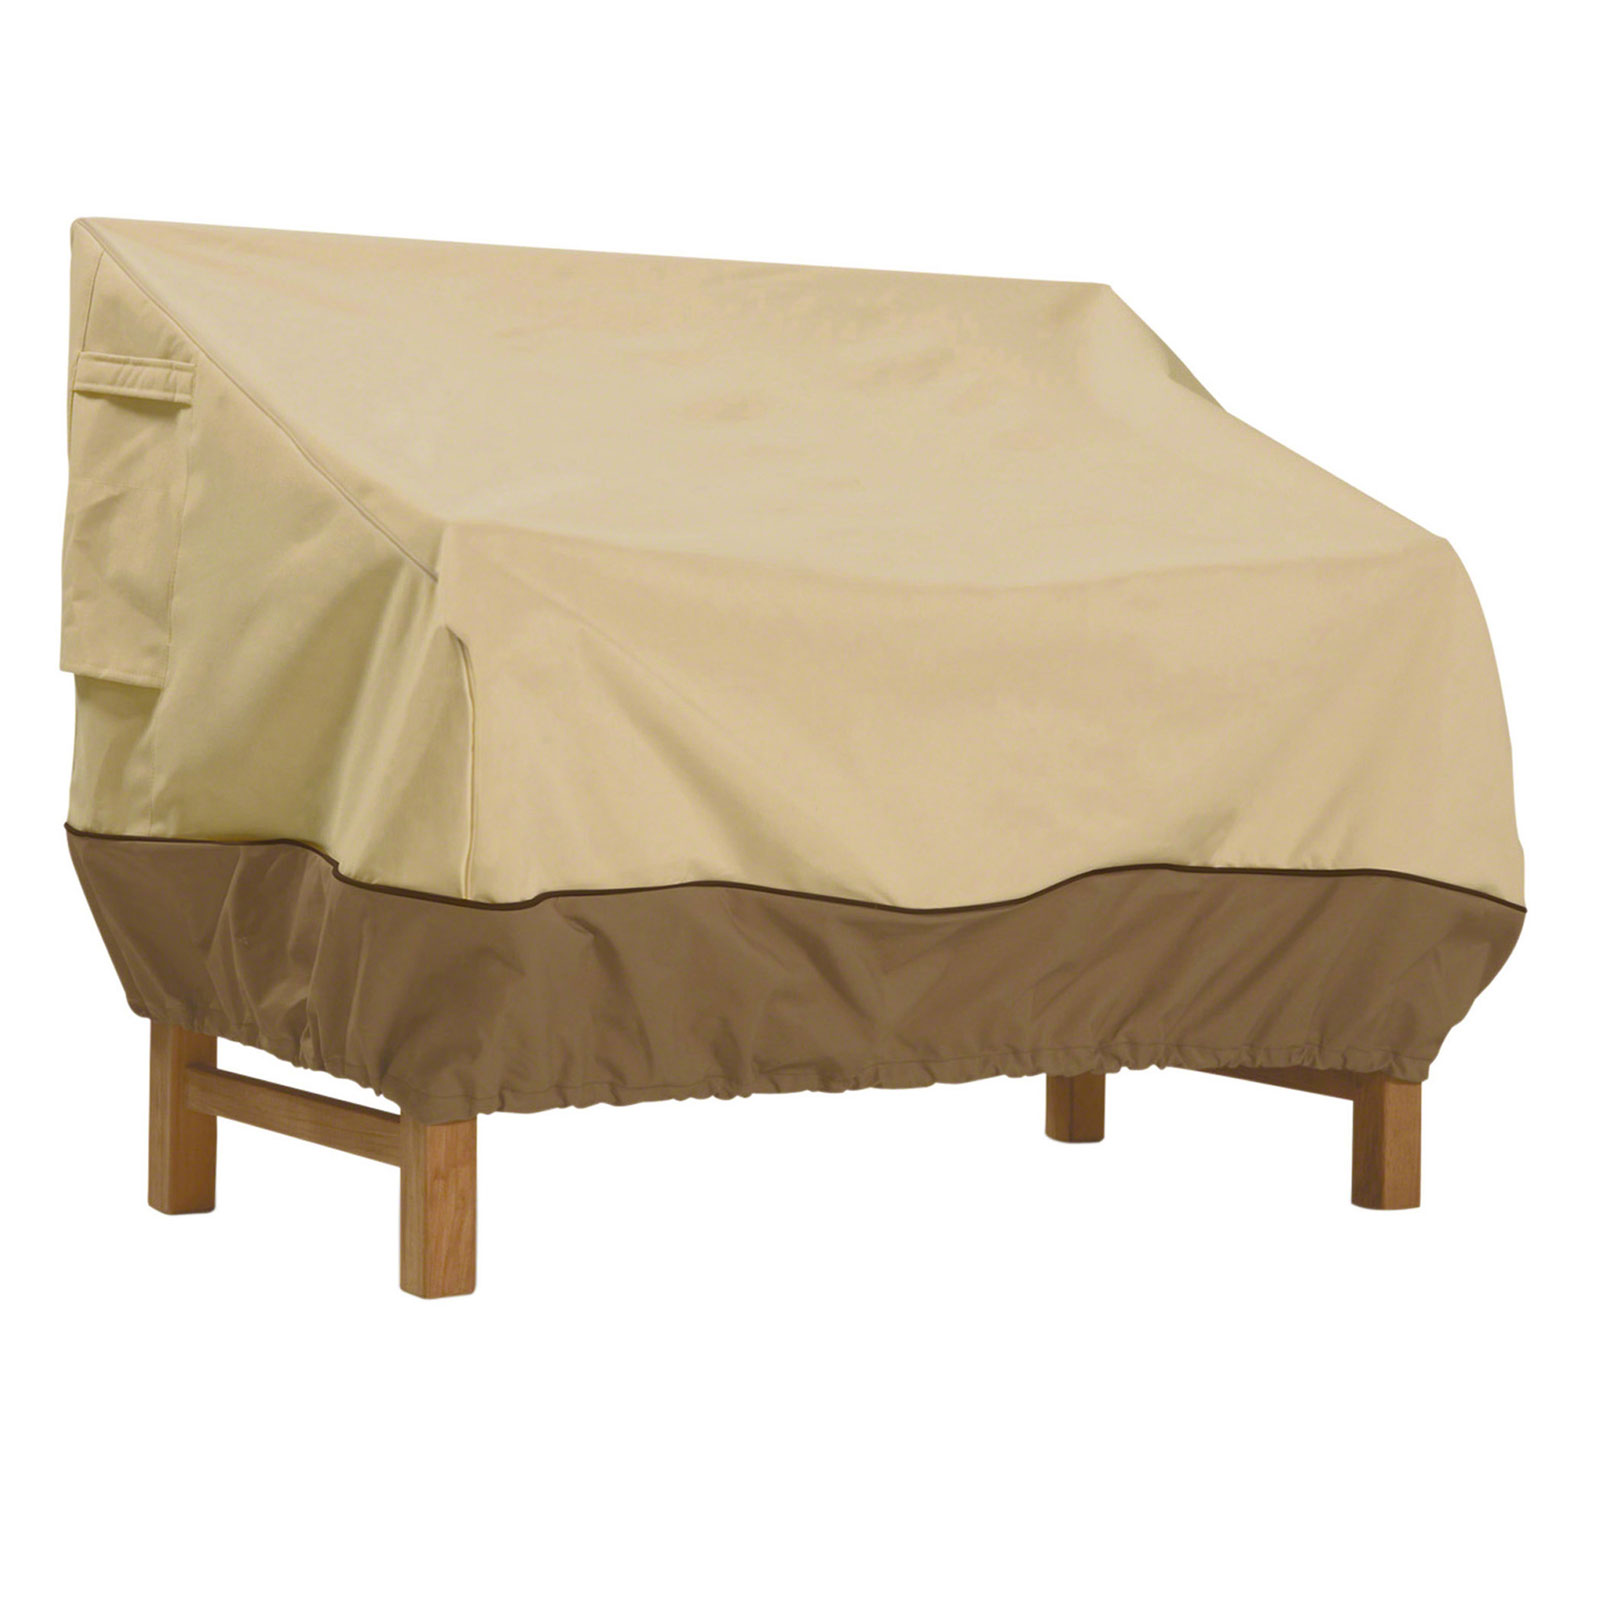 Patio loveseat cover in patio furniture covers for Patio furniture covers